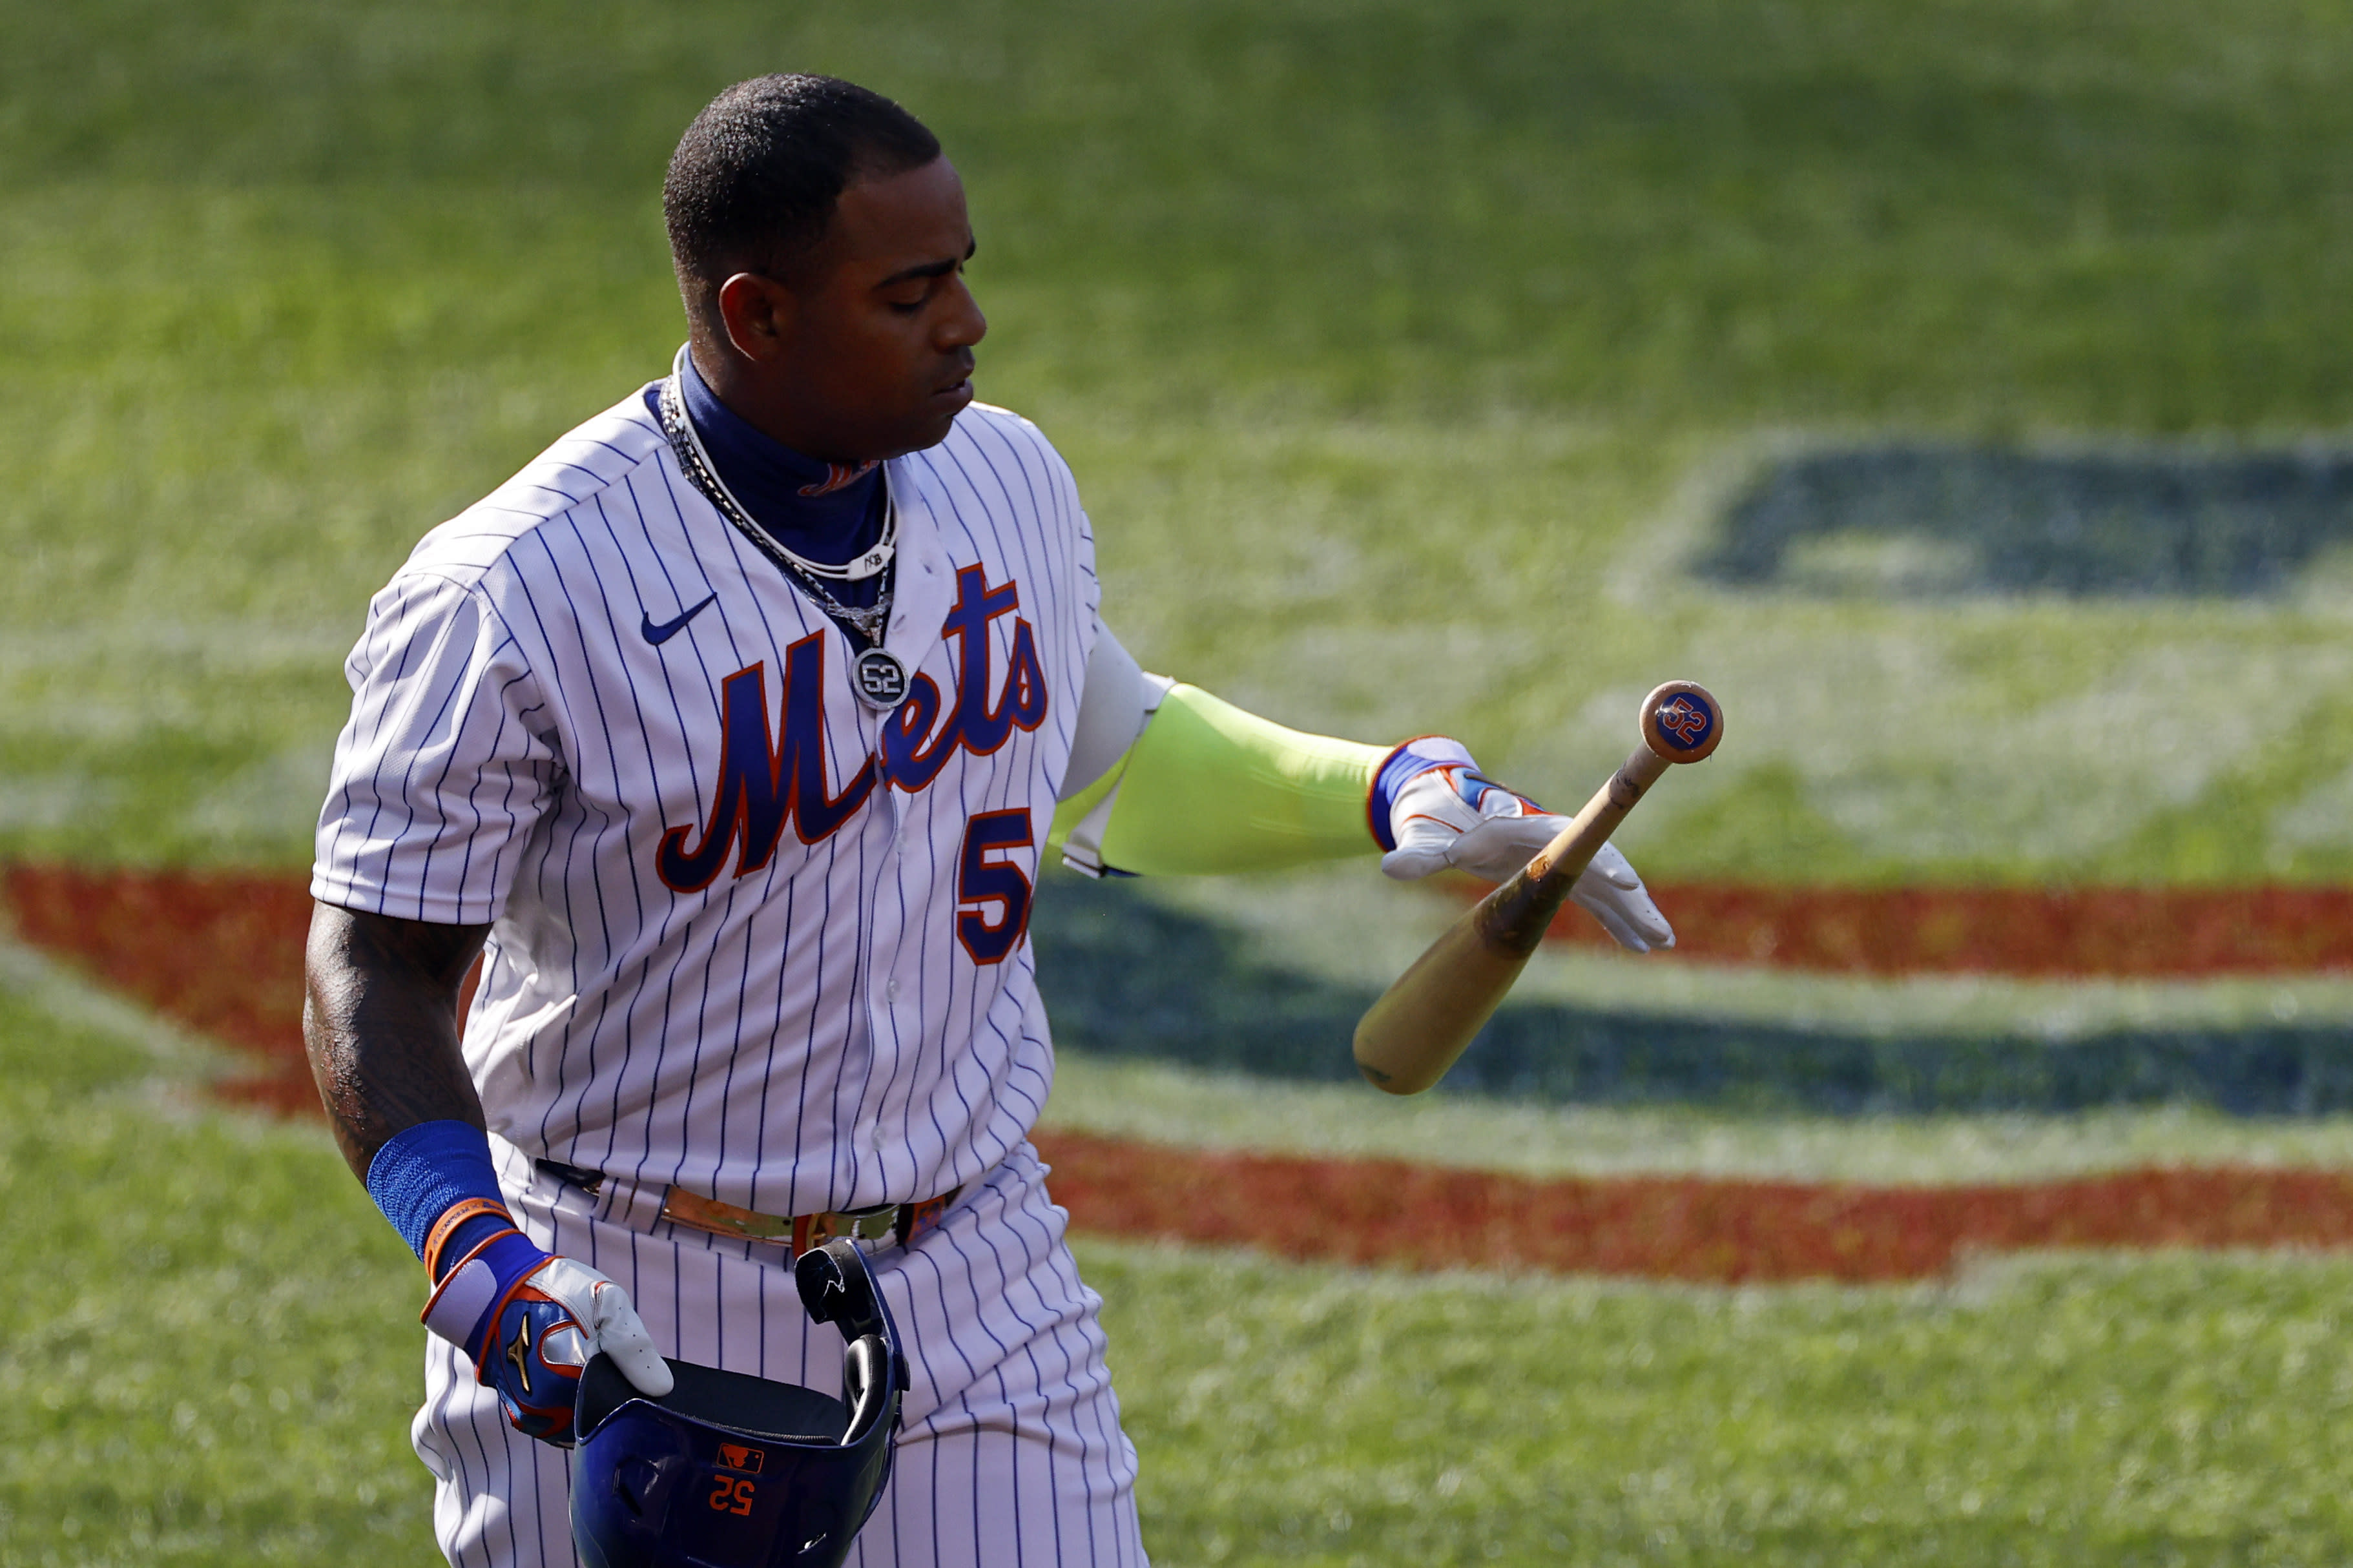 New York Mets' Yoenis Cespedes reacts after striking out against the Atlanta Braves during the sixth inning of a baseball game Saturday, July 25, 2020, in New York. (AP Photo/Adam Hunger)